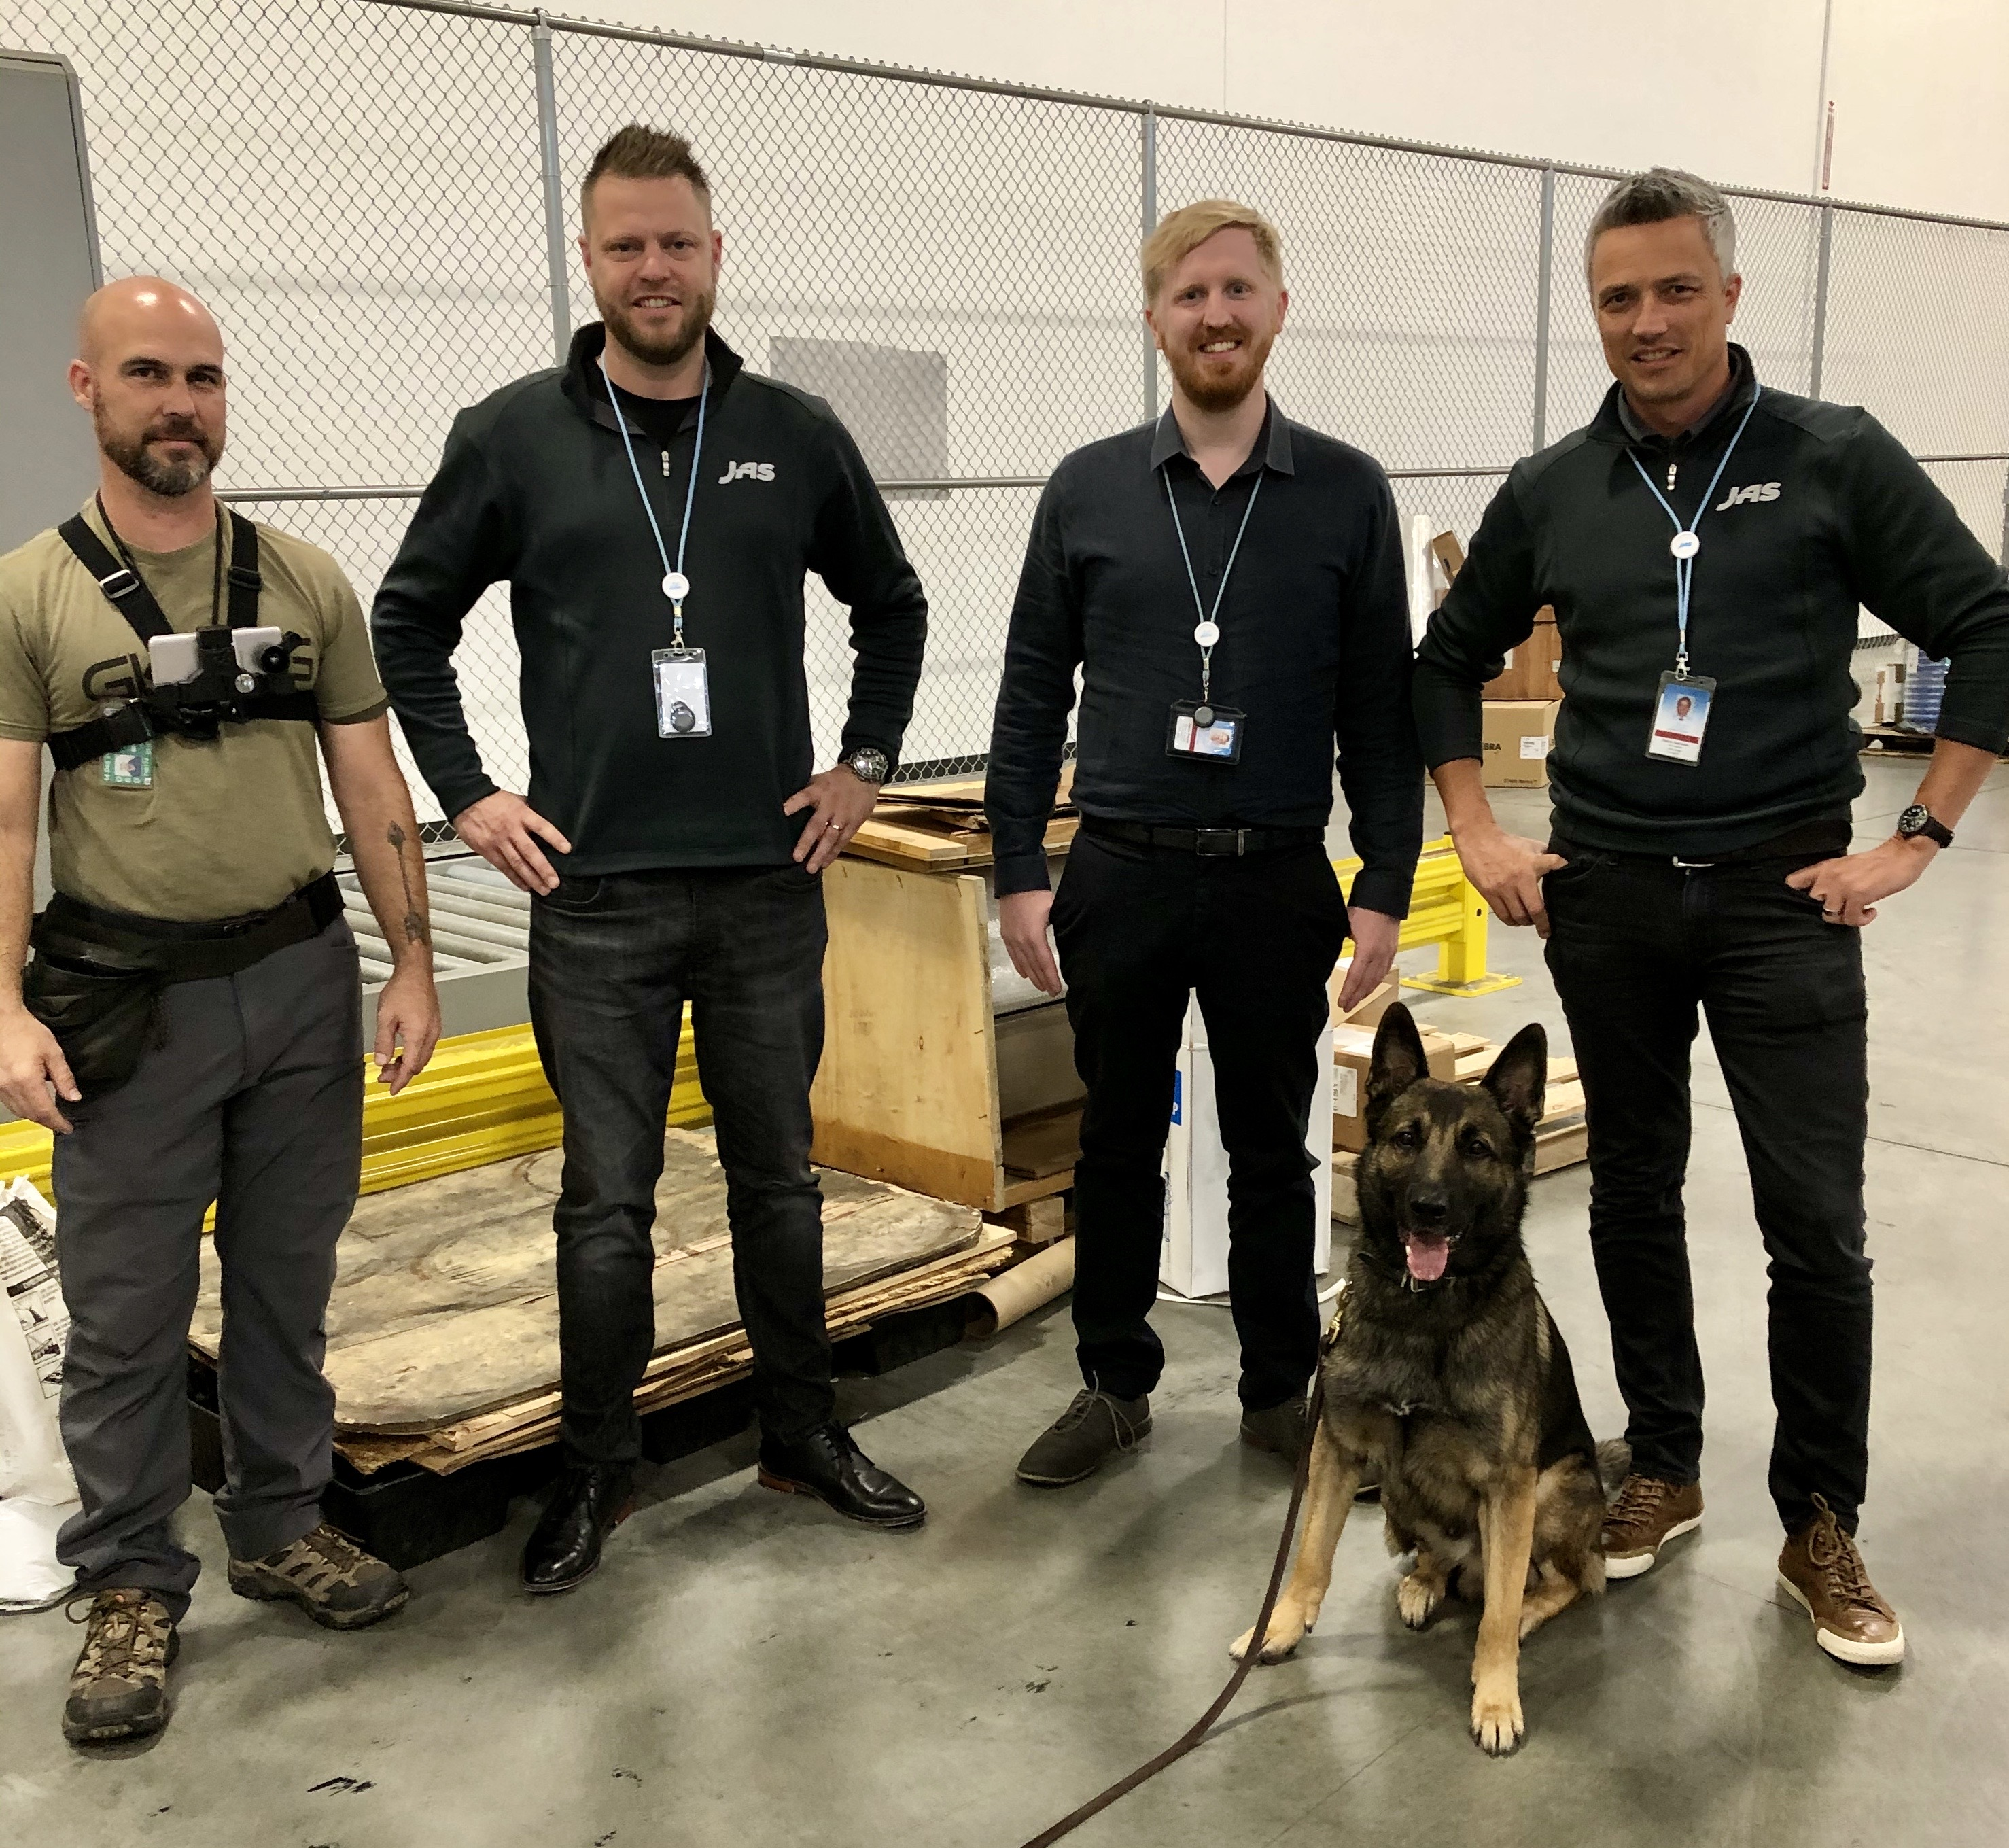 Pictured from left: GK9PG Group Handler, Jordy Romeijn (ORD Branch Manager), Jason Poulos (ORD Gateway Specialist), Patrik Gaehwiler (RVP MidWest).